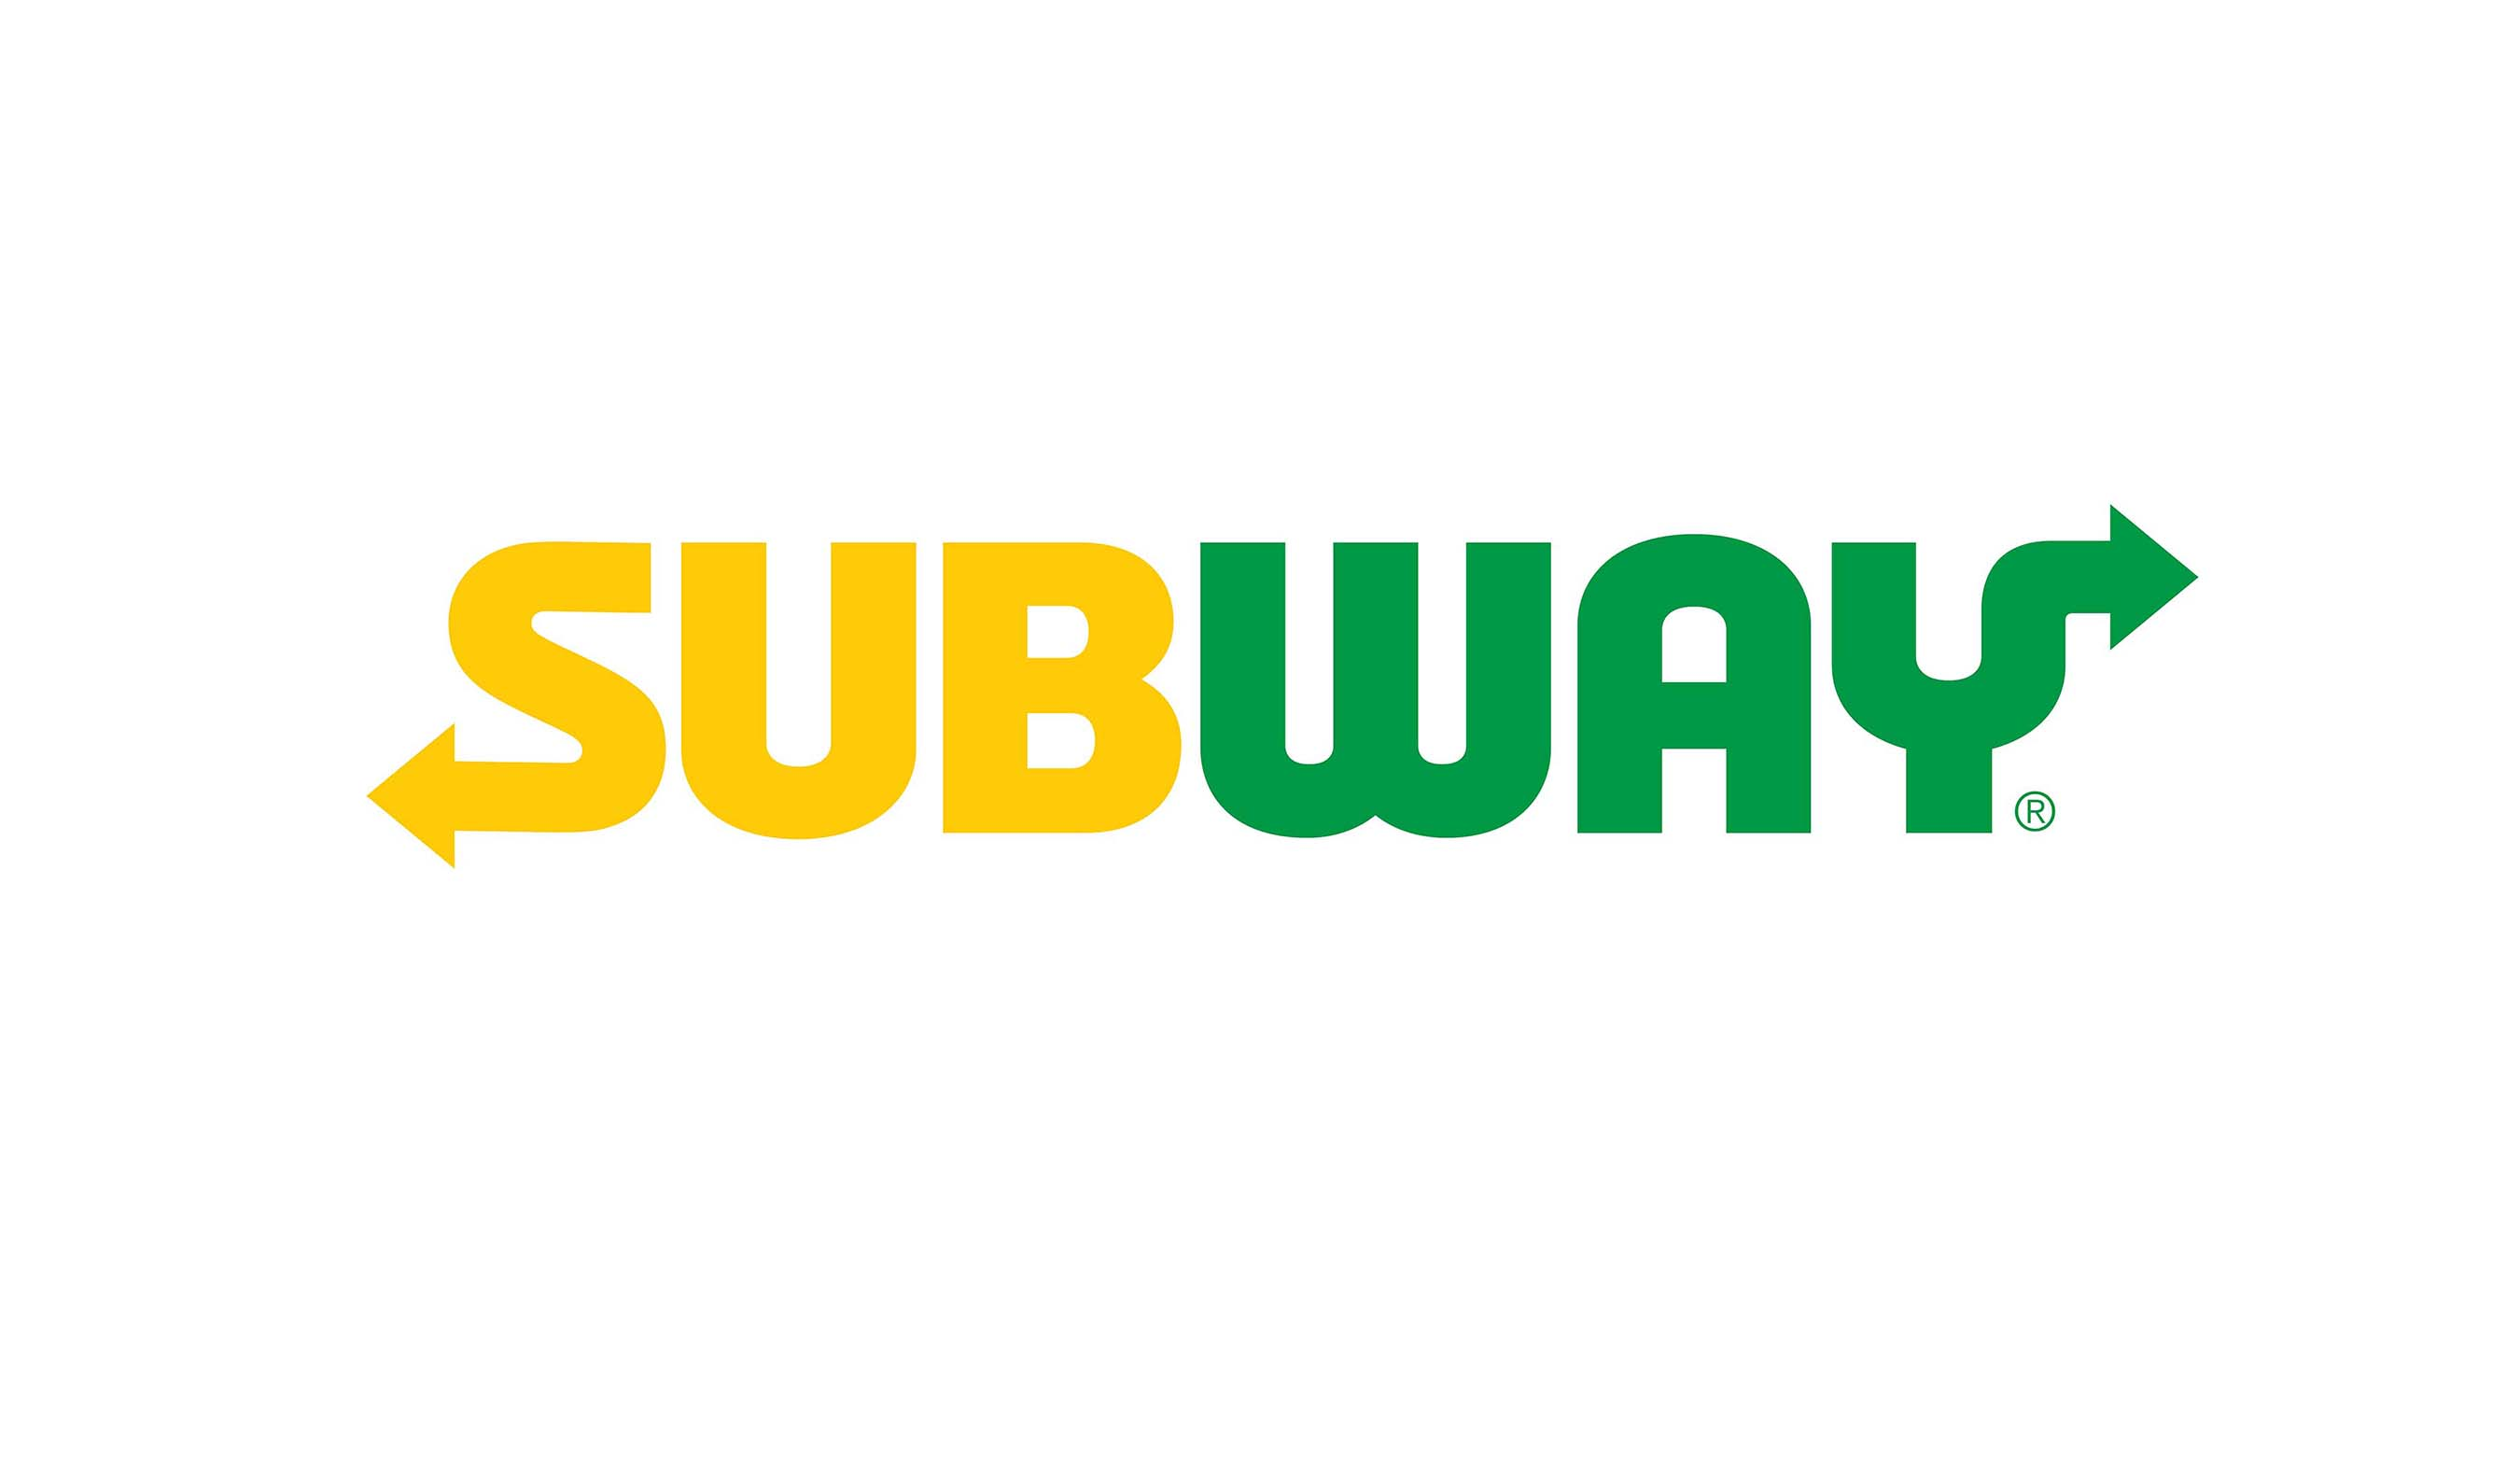 Subway Logo Redesign u2014 The Dieline - Branding u0026 Packaging Design - Subway Logo Eps PNG